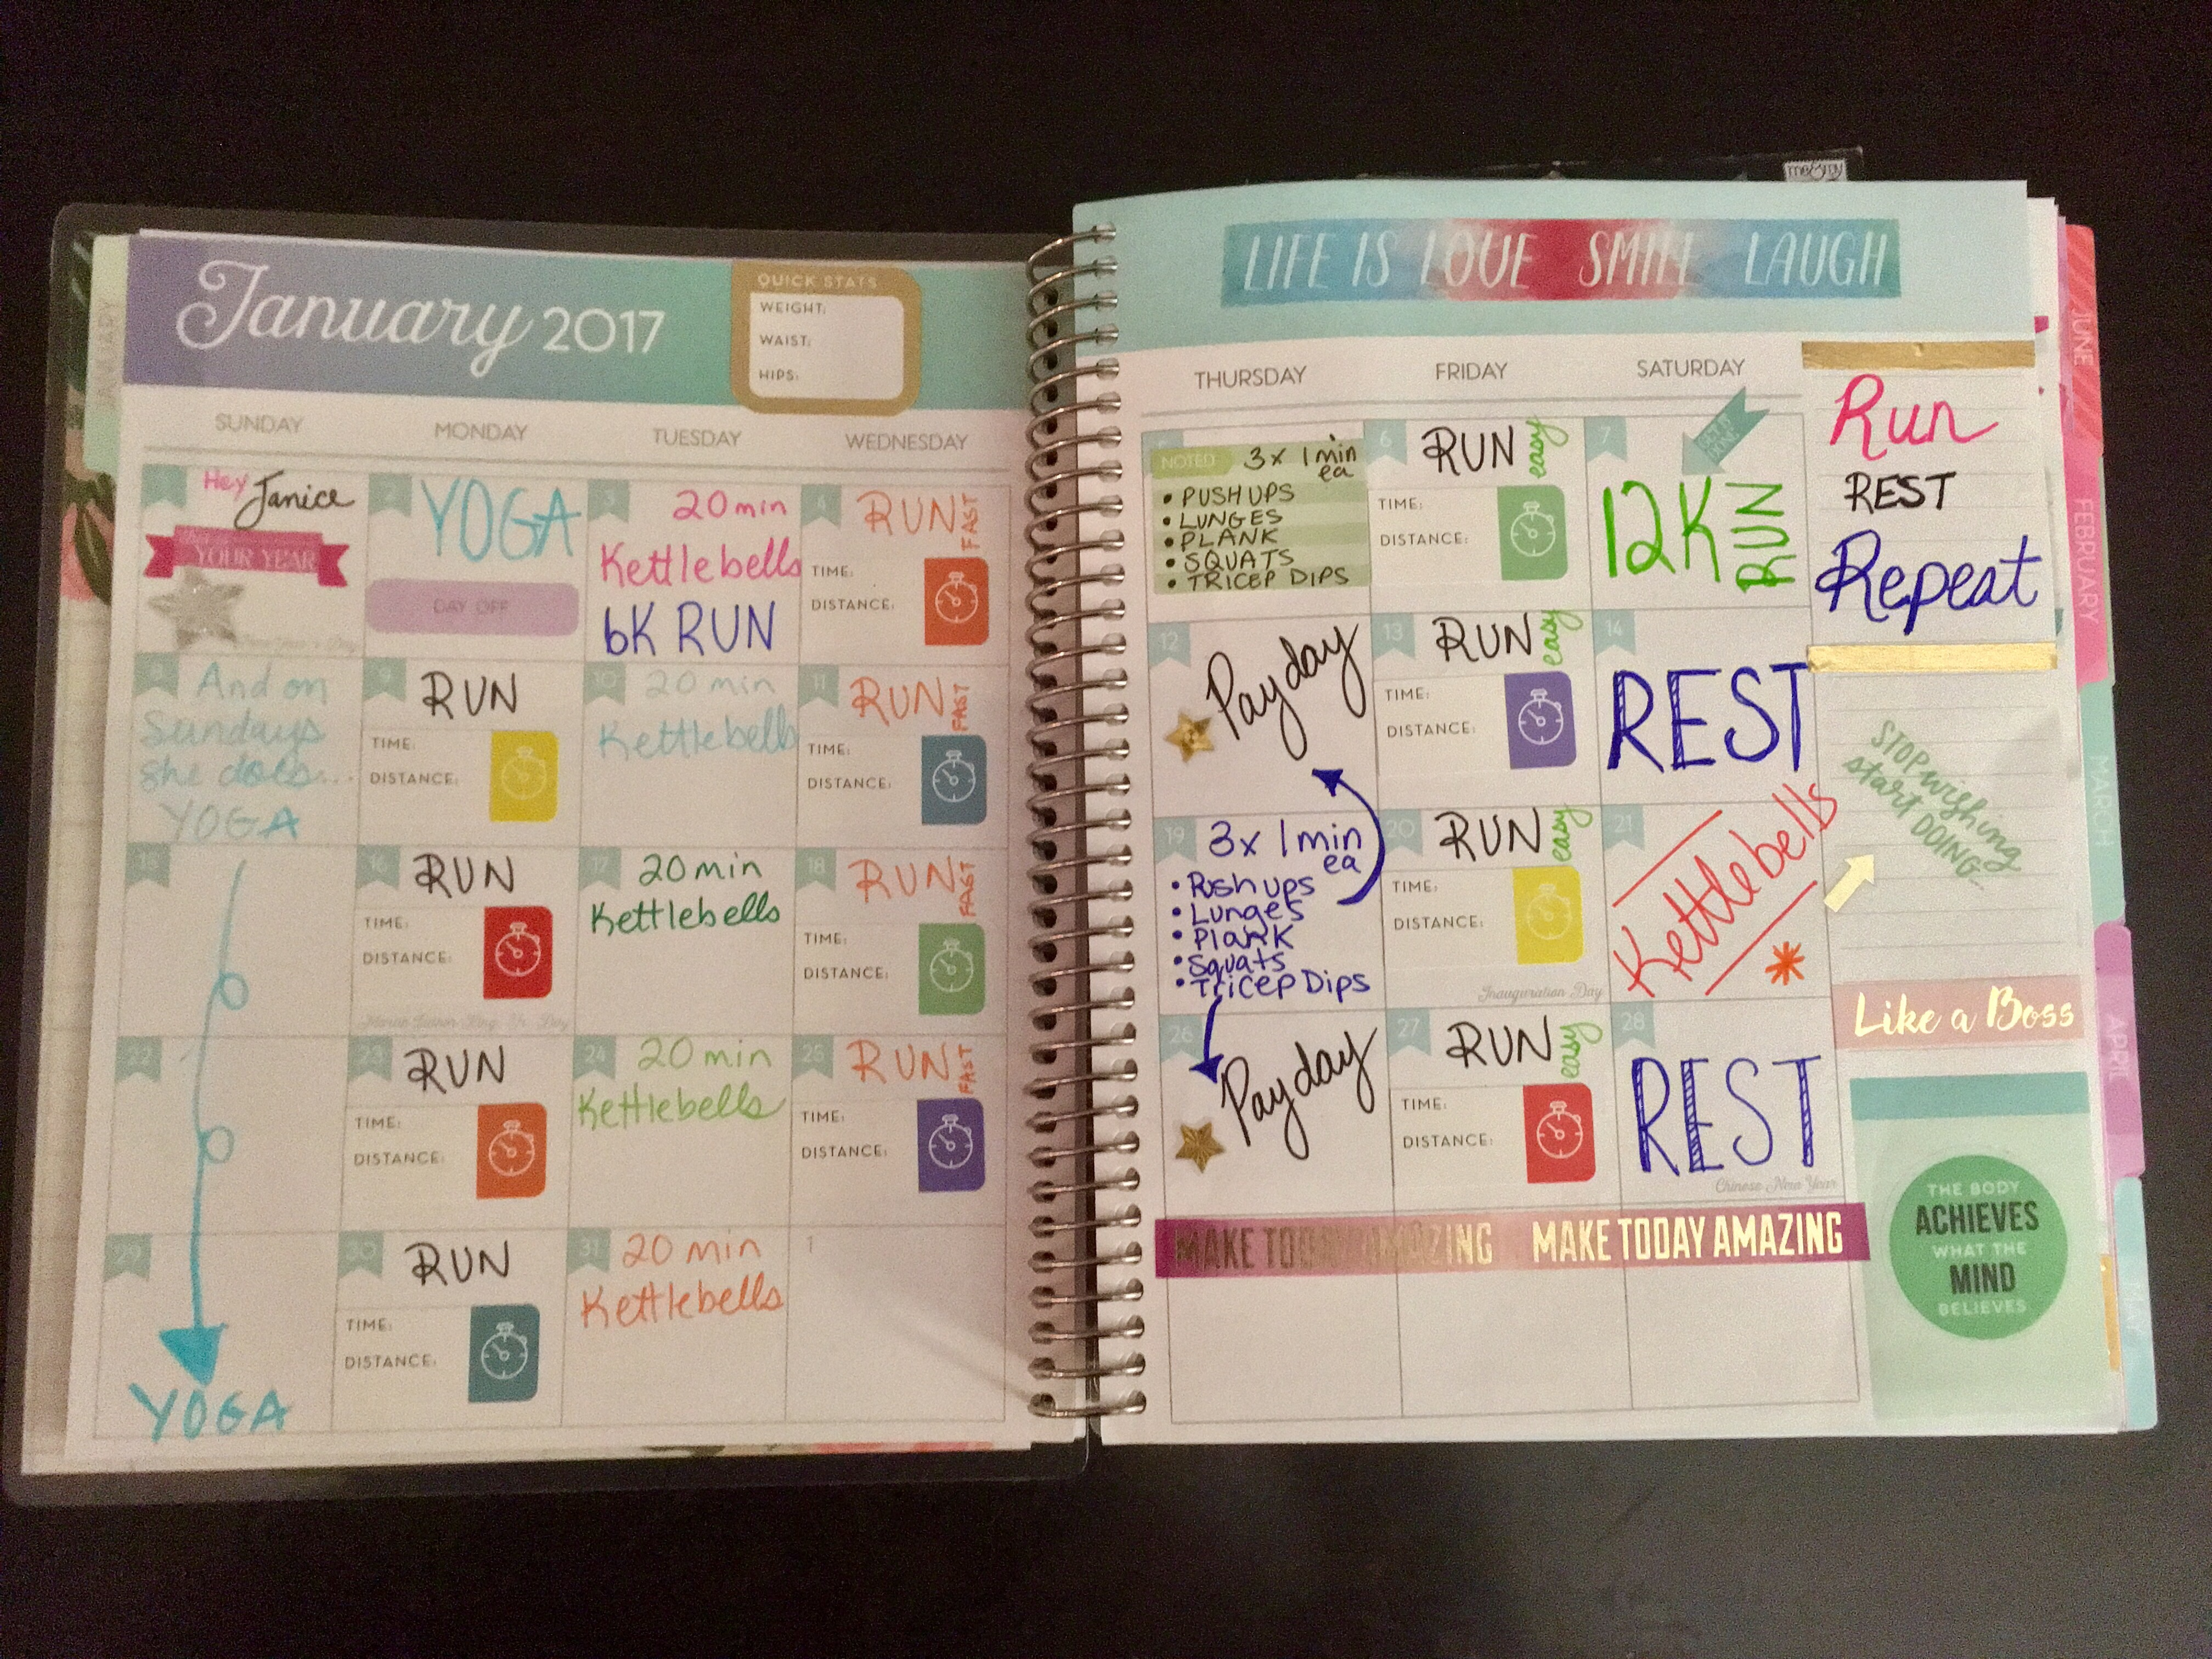 Planning for an ACTIVE 2017 with the Michael's Recollections® Creative Year Planner